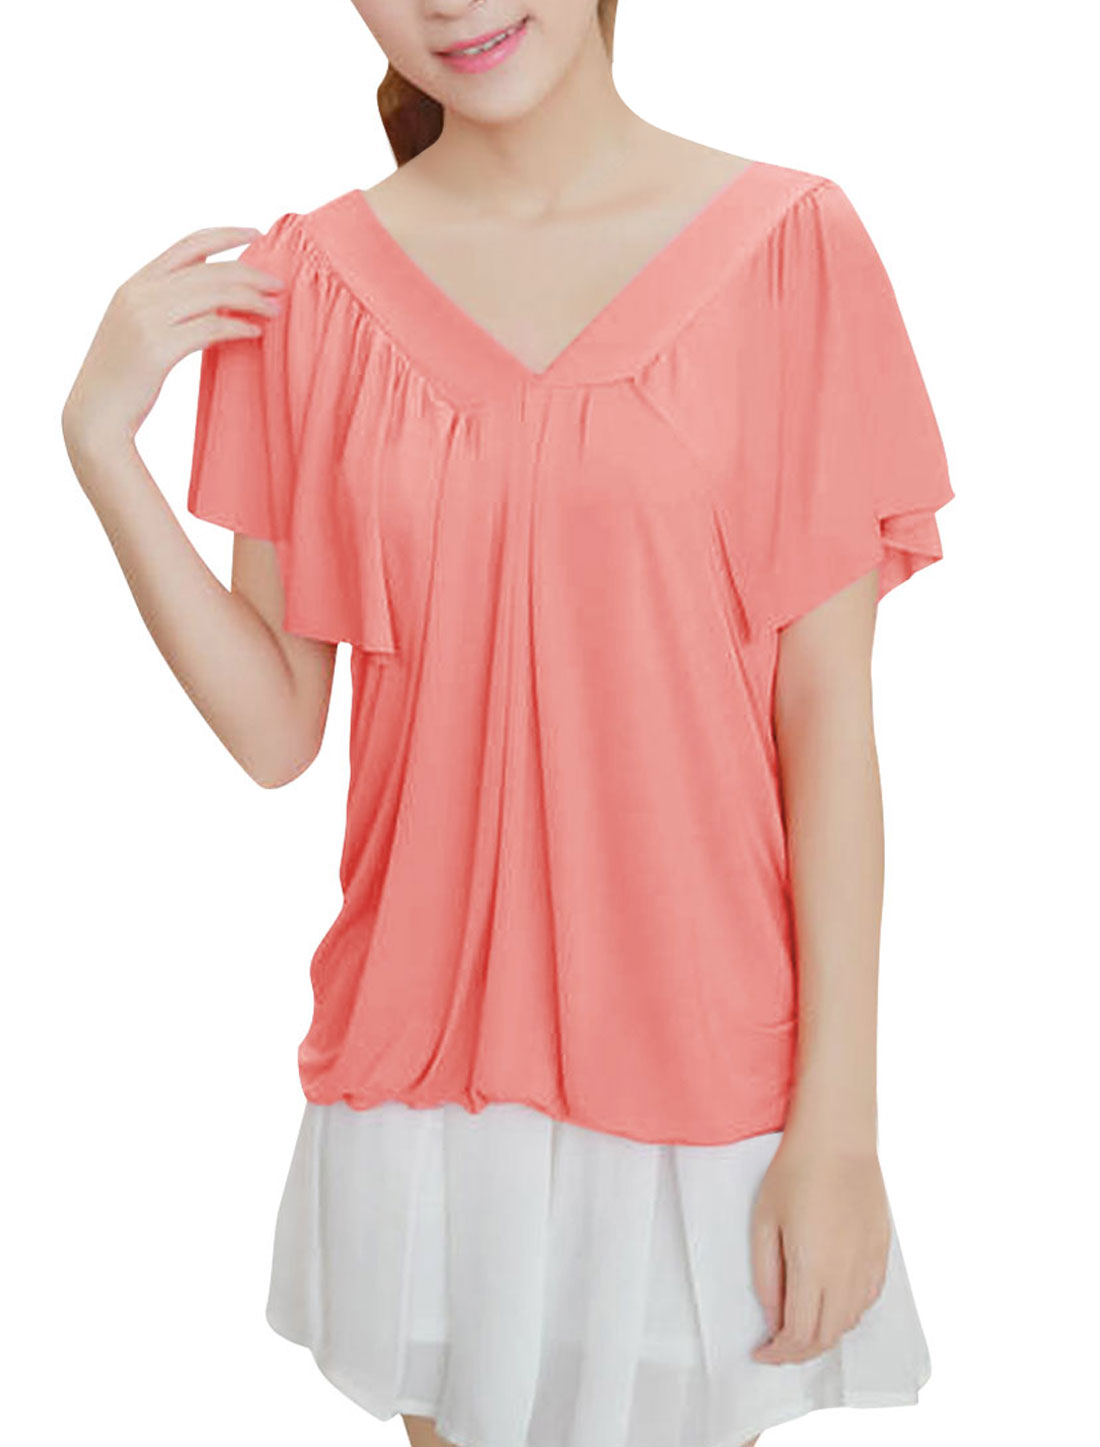 Ladies Chic V Neckline Short Ruffles Sleeve Design Coral Pink Top Shirt XS